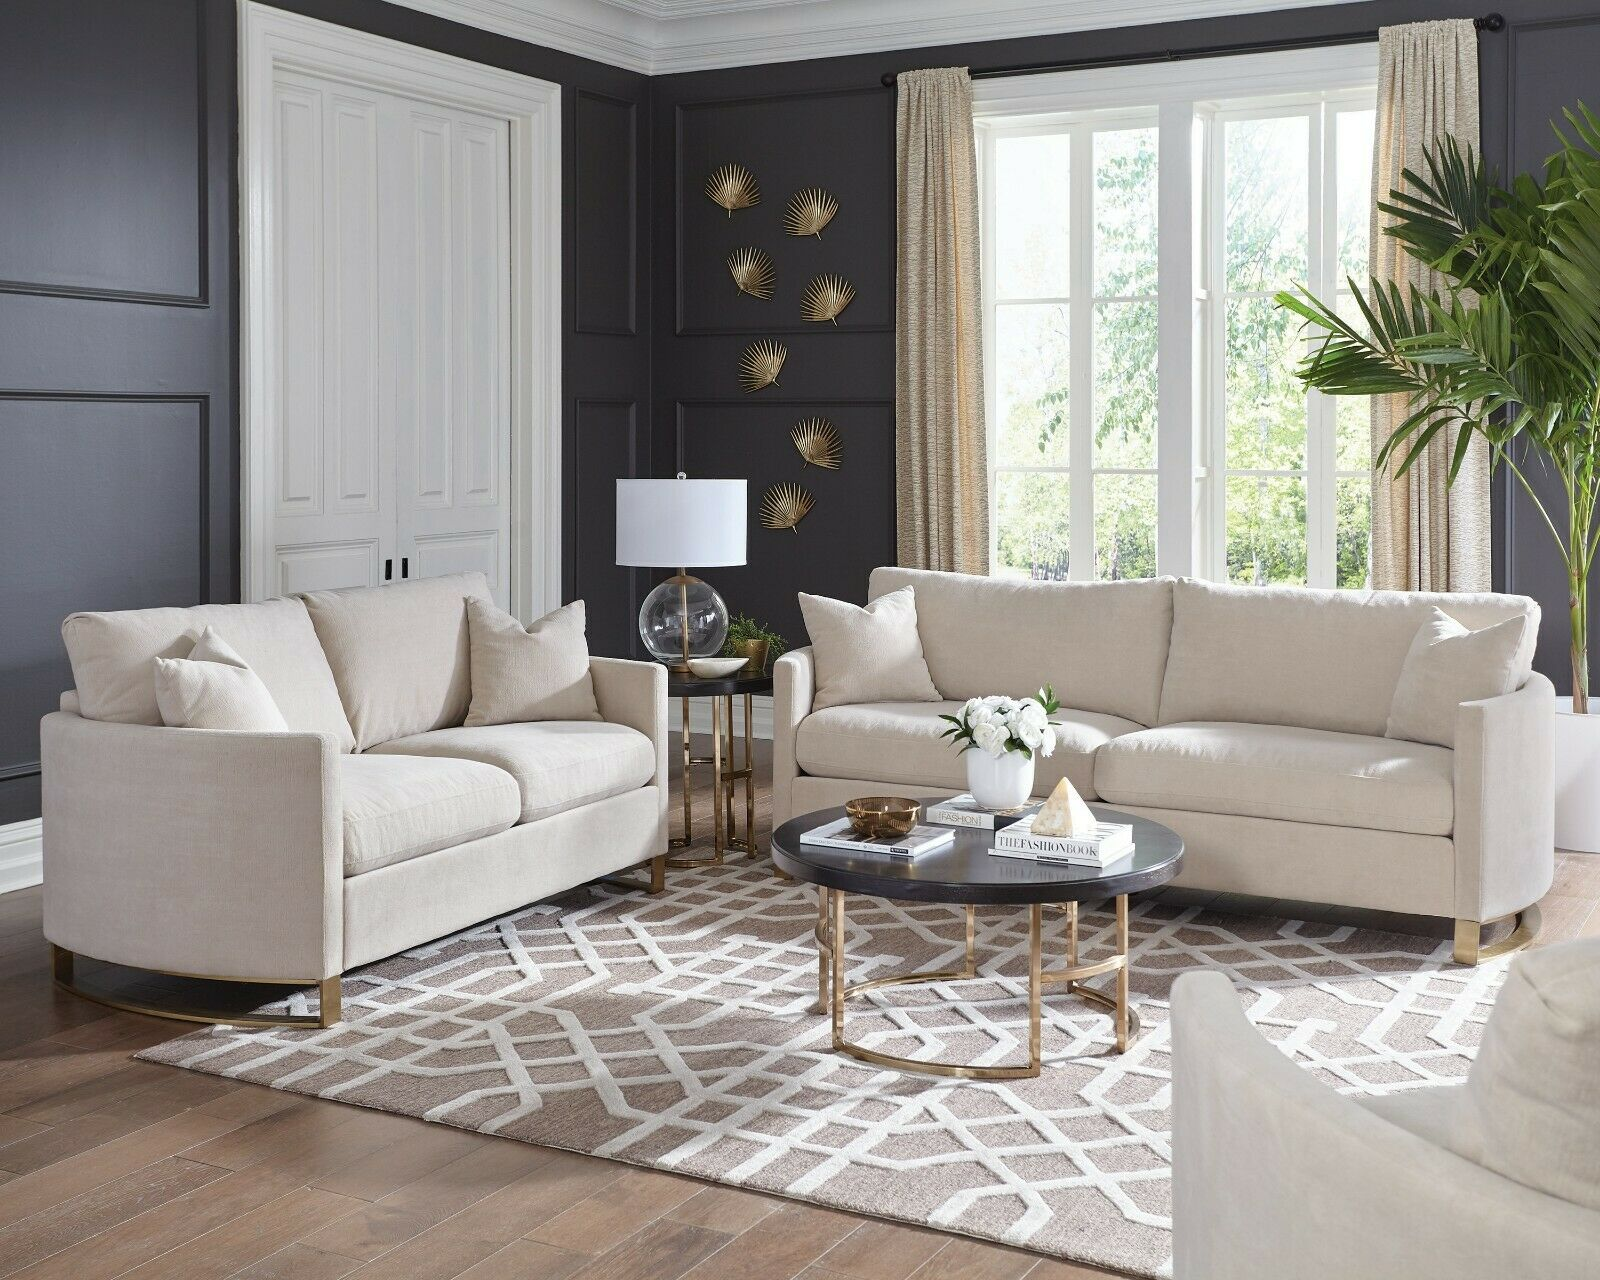 Modern Plush 3-Piece Living Room Set with Sofa Loveseat and Chair Beige  Chenille